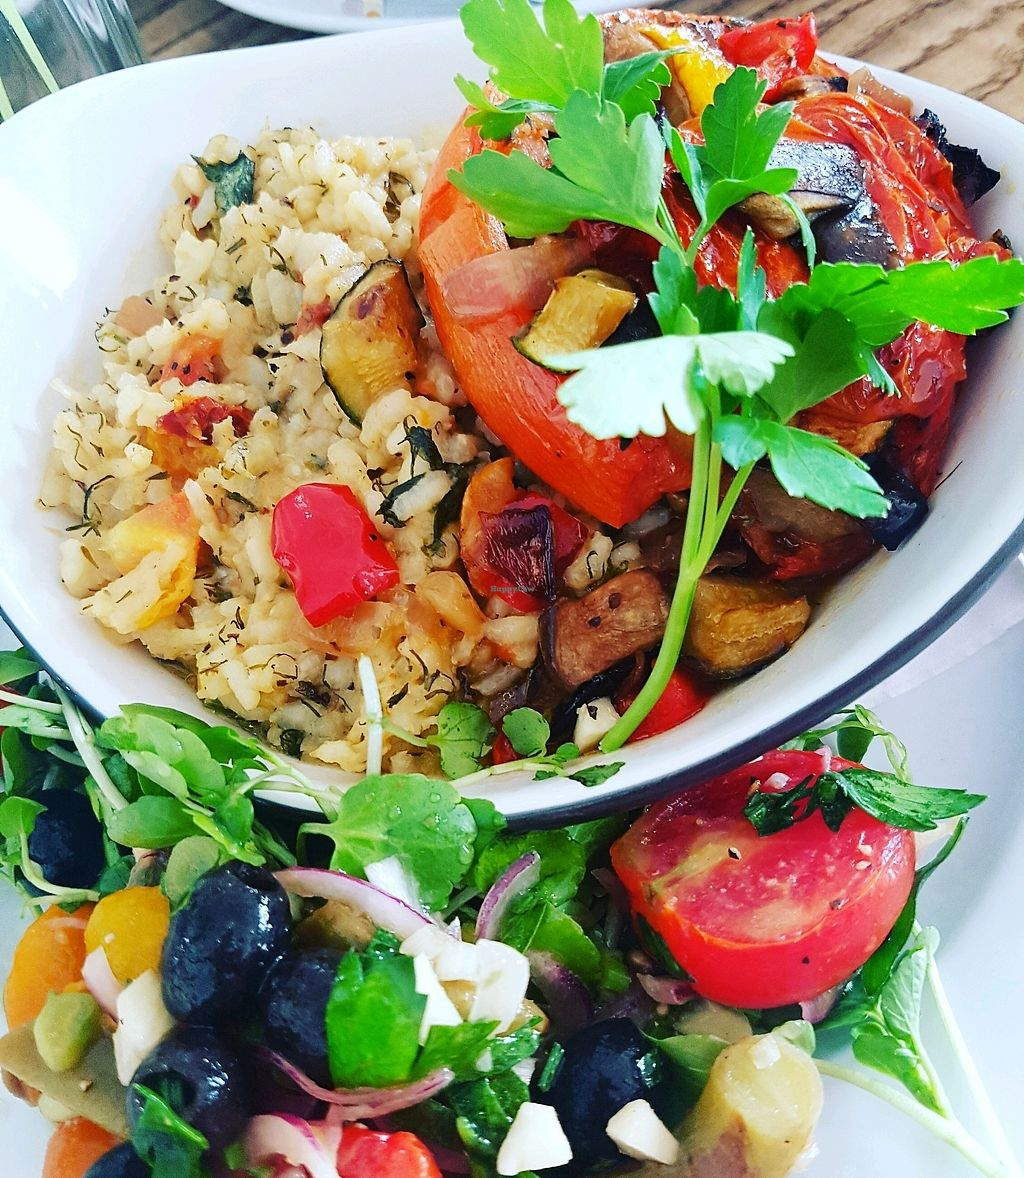 """Photo of The Zoo  by <a href=""""/members/profile/KatyEvelyn"""">KatyEvelyn</a> <br/>baked tomato and vegan risotto! <br/> September 12, 2017  - <a href='/contact/abuse/image/775/303634'>Report</a>"""